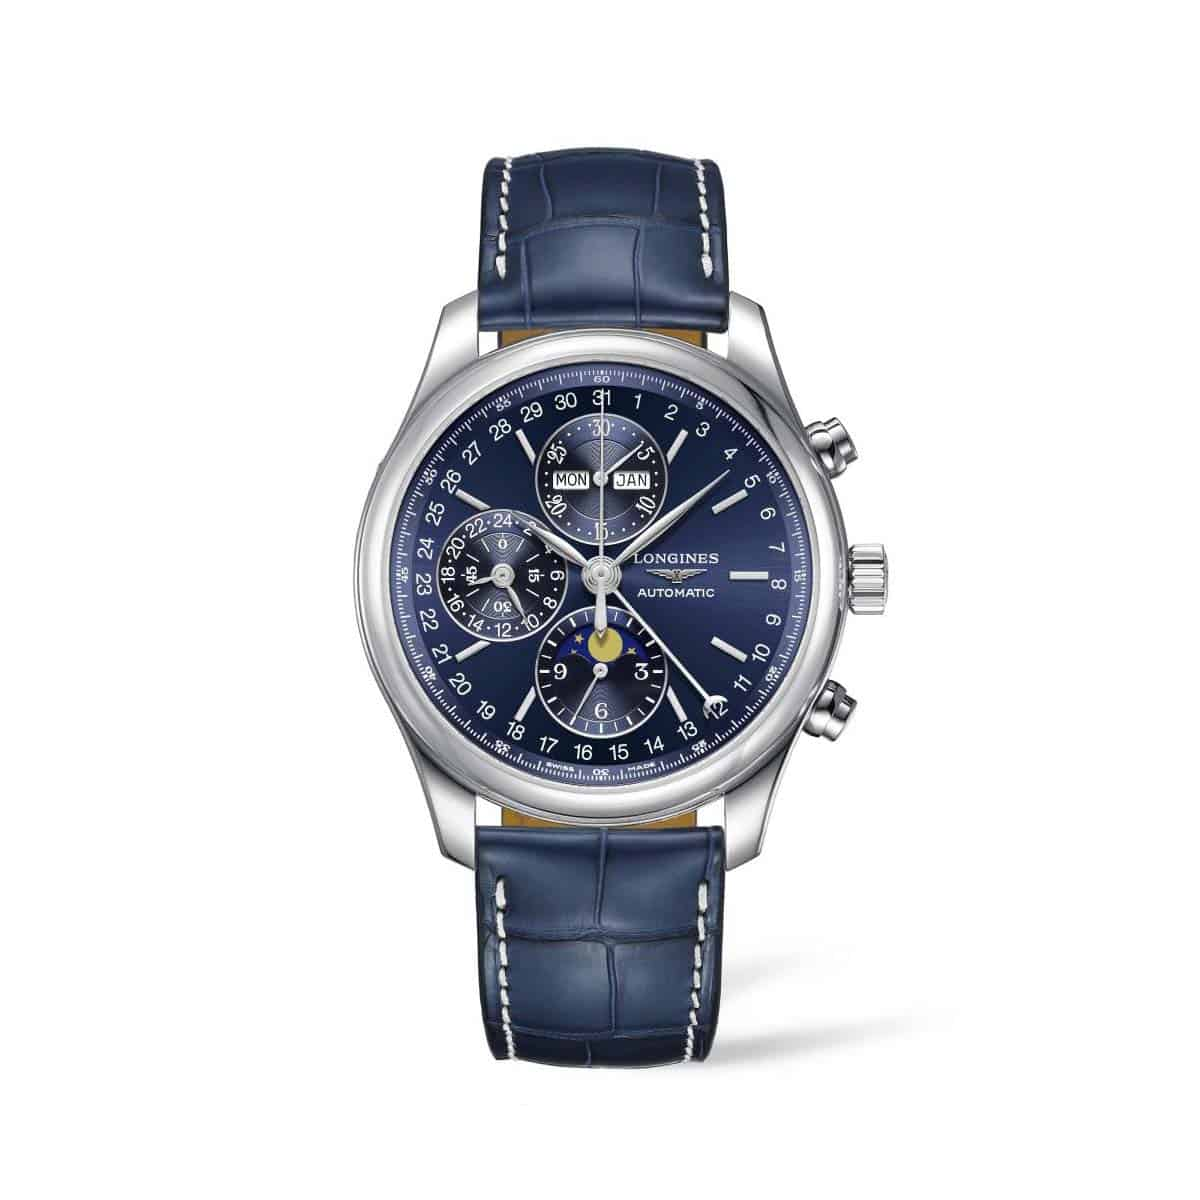 L27734920 — The Longines Master Collection 42mm Blue Dial Chronograph